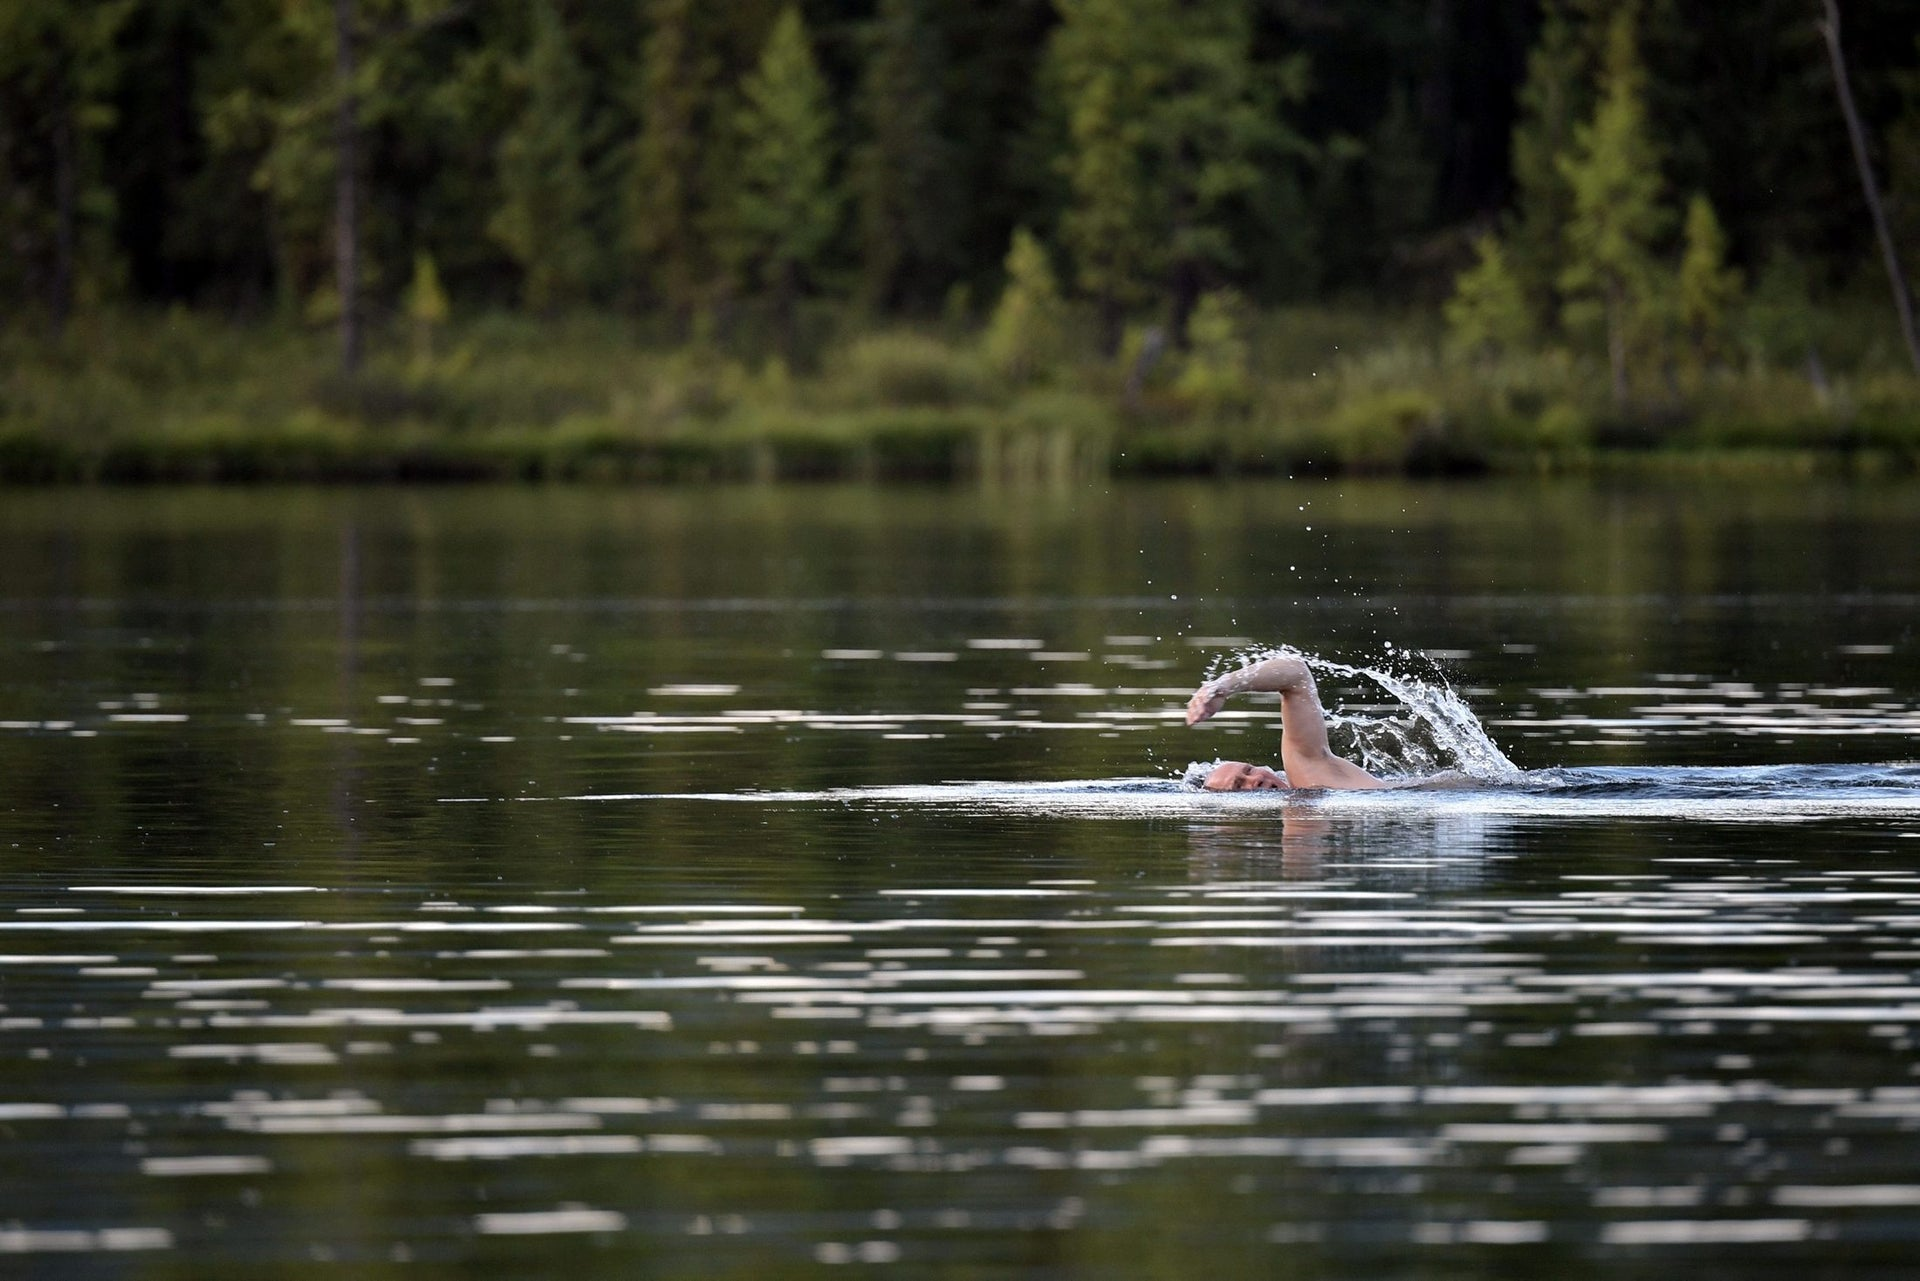 Russian President Vladimir Putin swims on a hunting and fishing trip which took place on August 1-3 in the republic of Tyva in southern Siberia, in a photo released by the Kremlin on August 5, 2017.